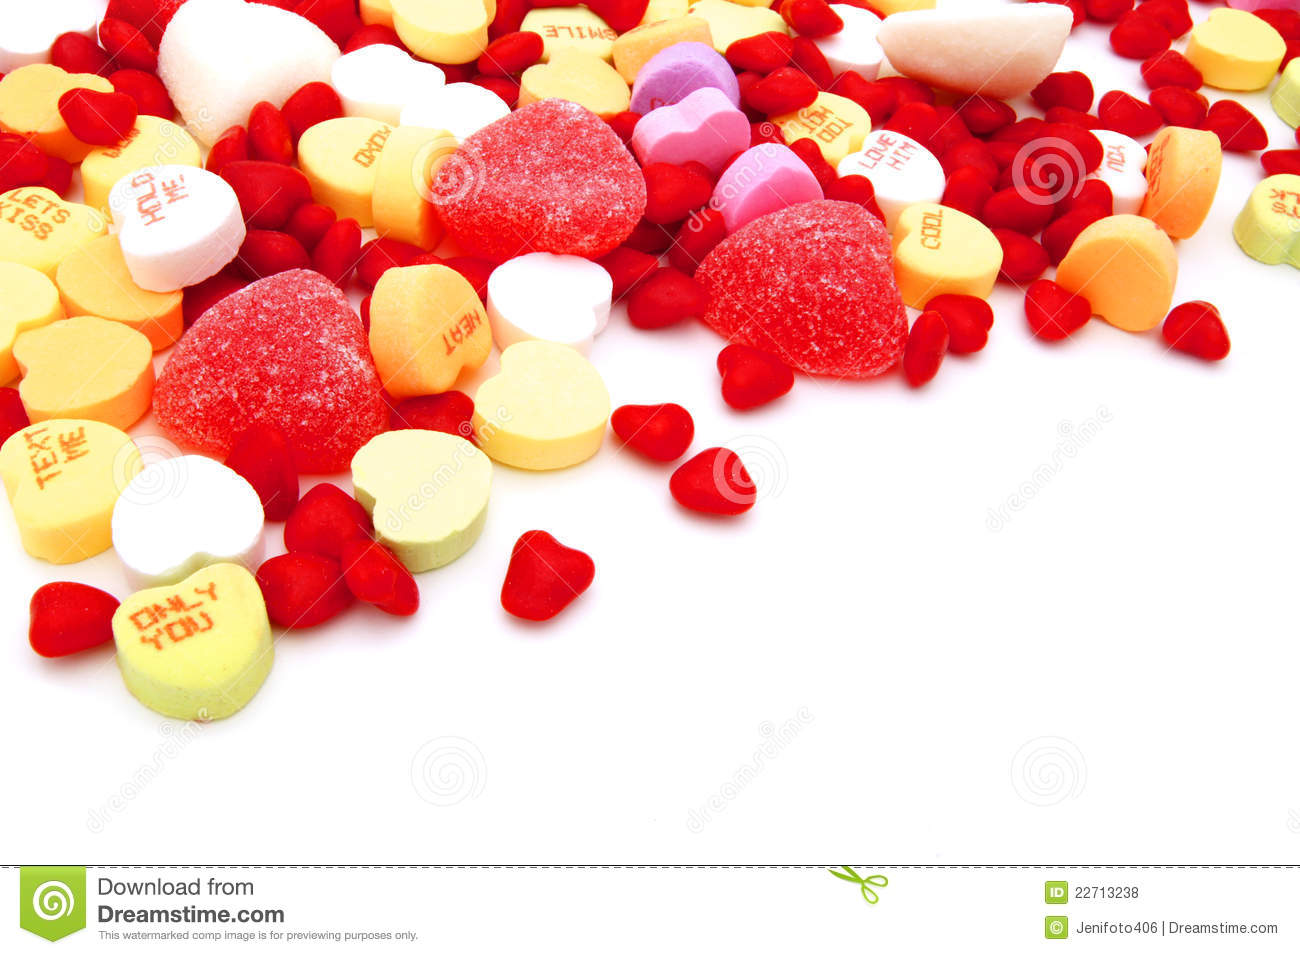 valentines-day-candy-background-22713238 jpgValentines Day Candy Borders Free